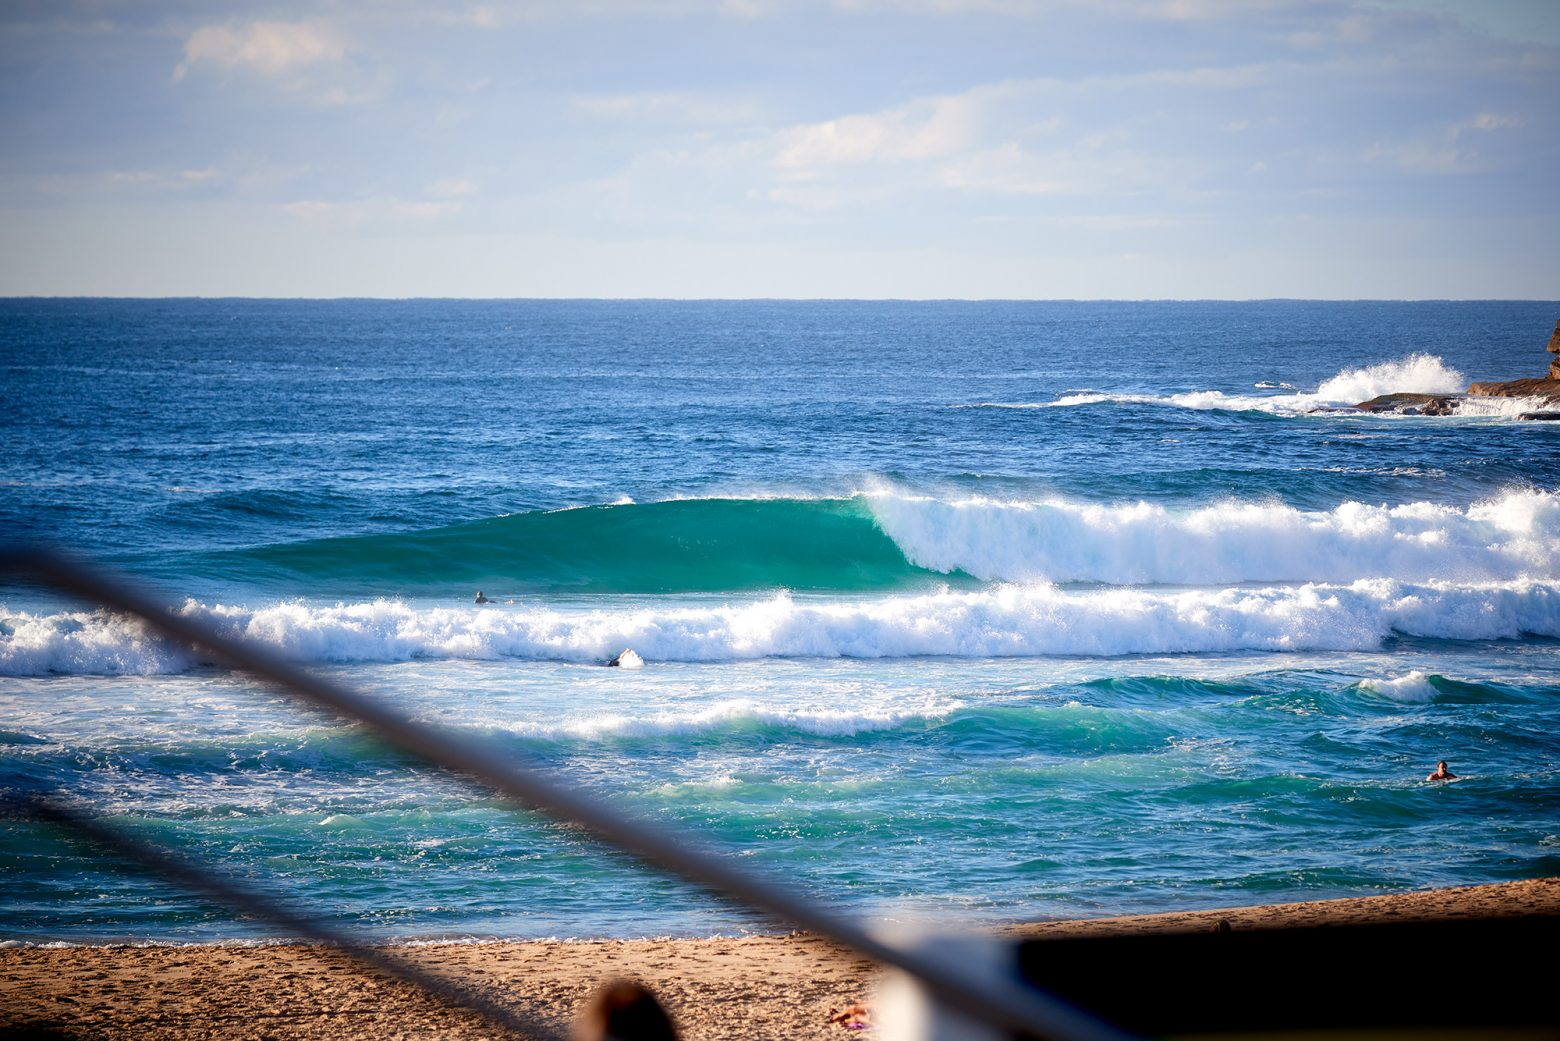 Some really quality waves on the weekend